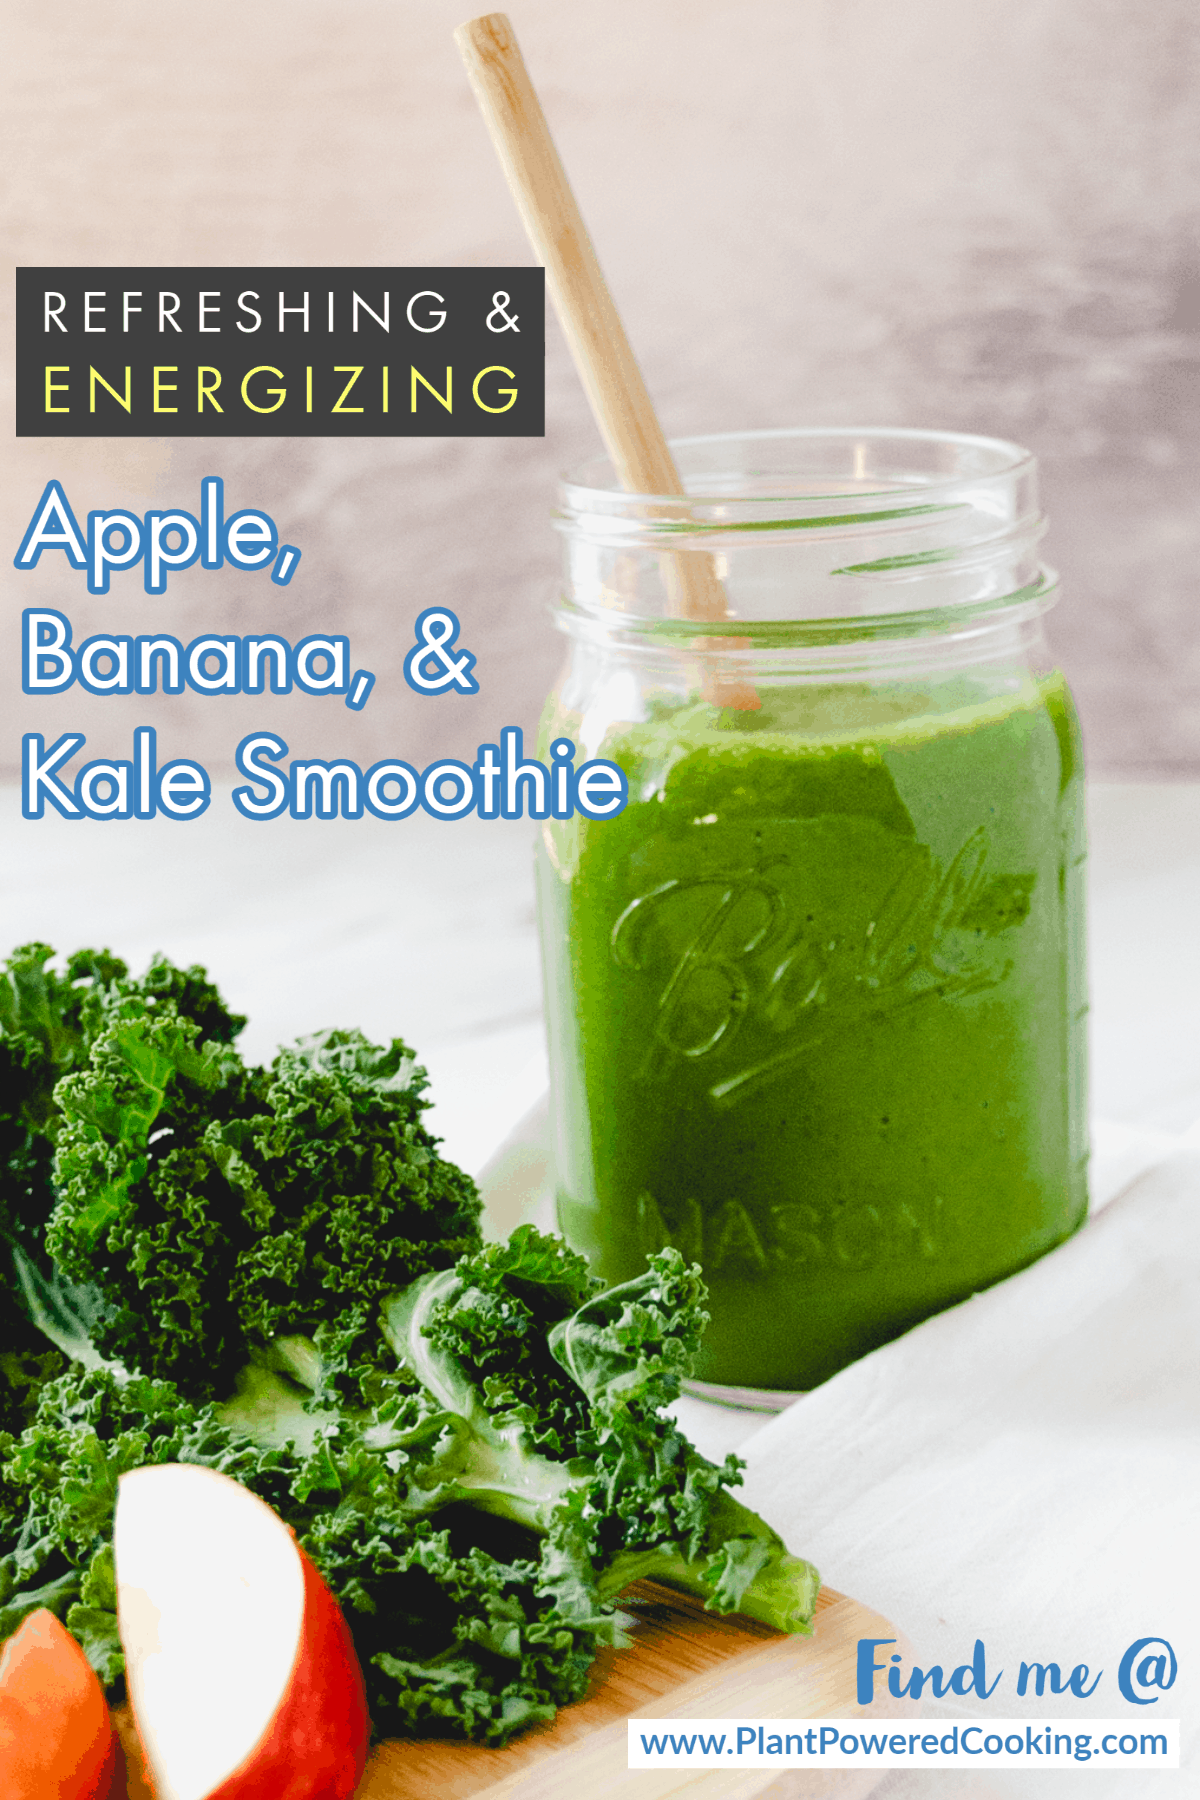 """Mason jar filled with green smoothie with text overlays that read """"Refreshing & Energizing Apple, Banana, & Kale Smoothie"""" and """"Find me @ www.PlantPoweredCooking.com"""""""